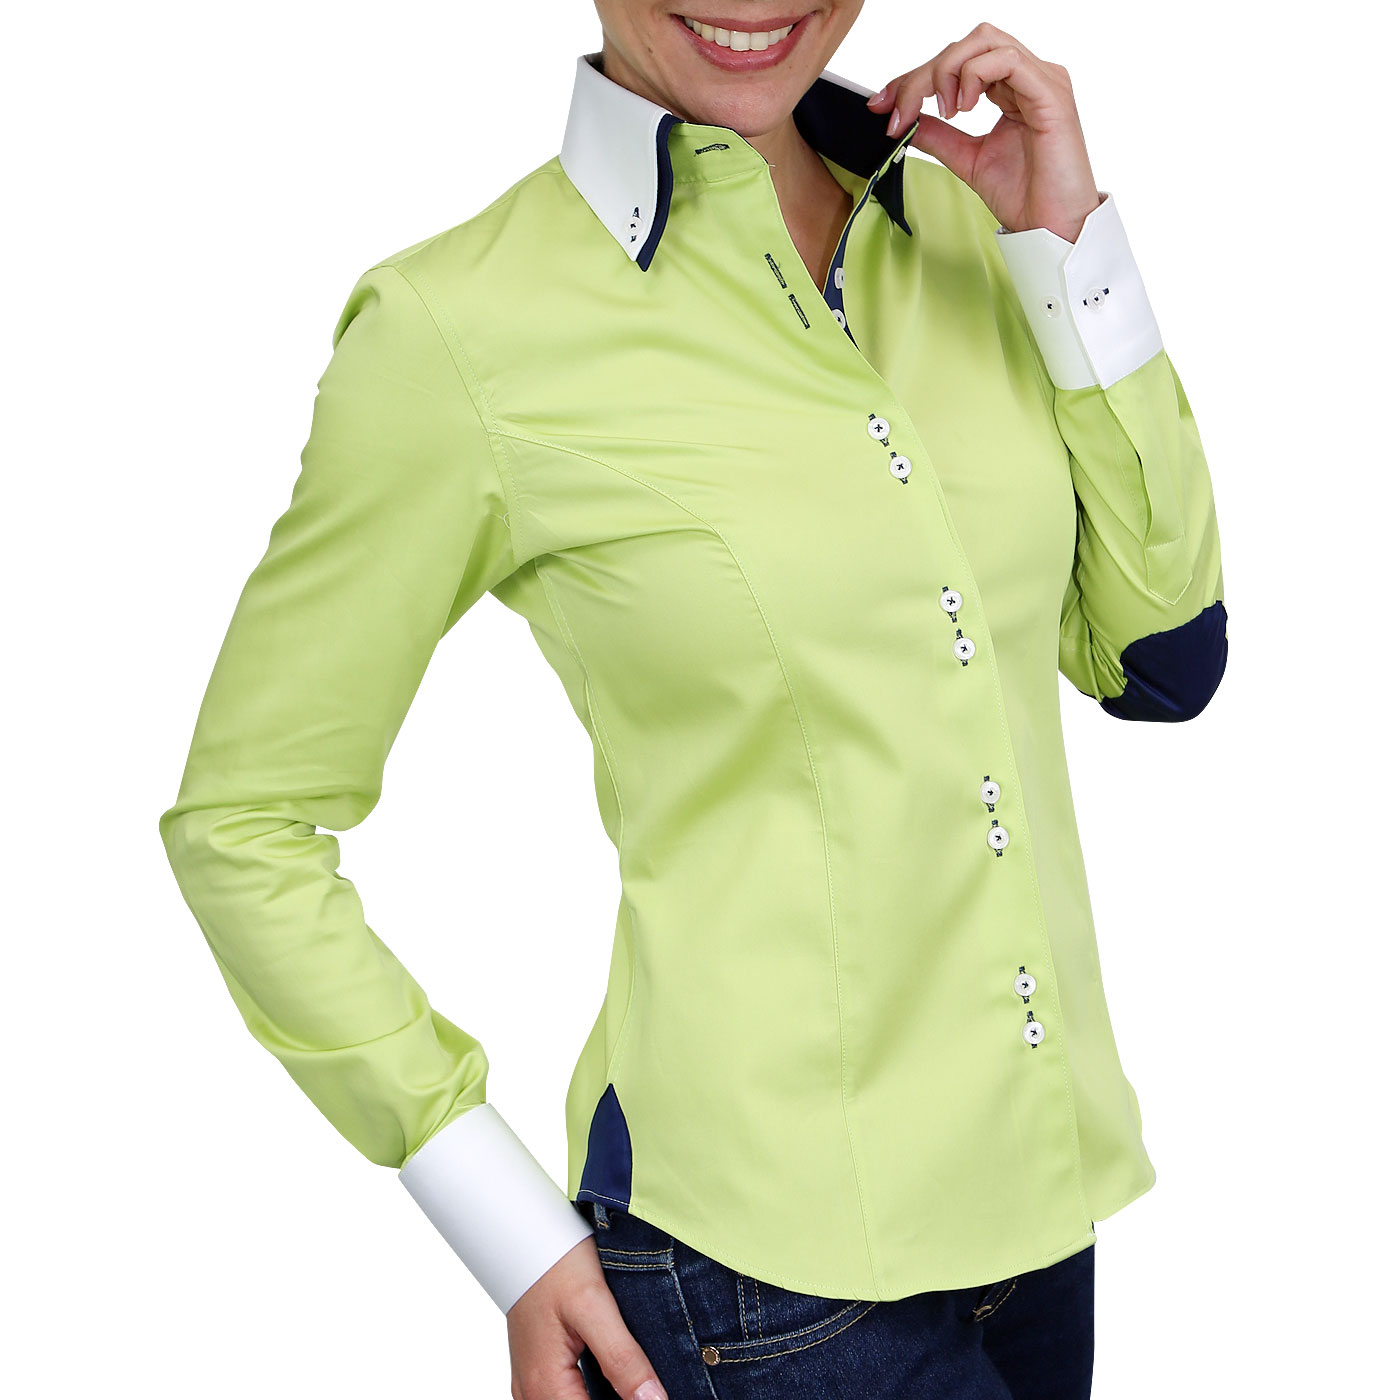 Double collar woman's shirt